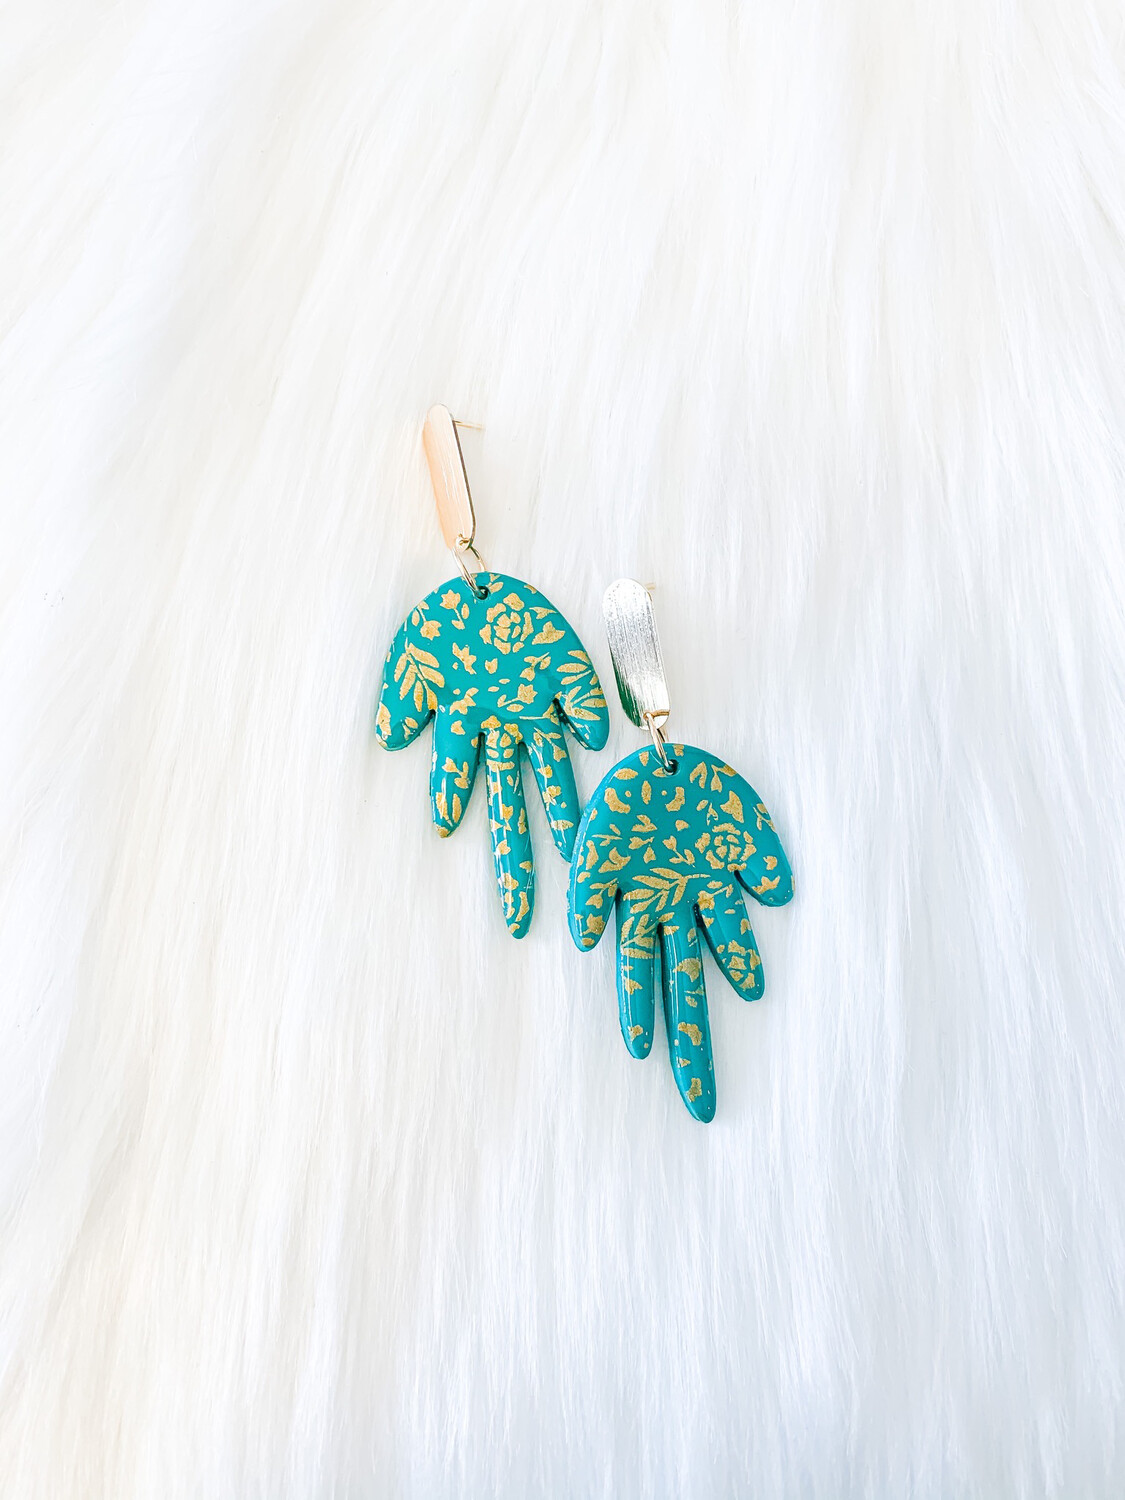 Lily || Polymer Clay Earrings